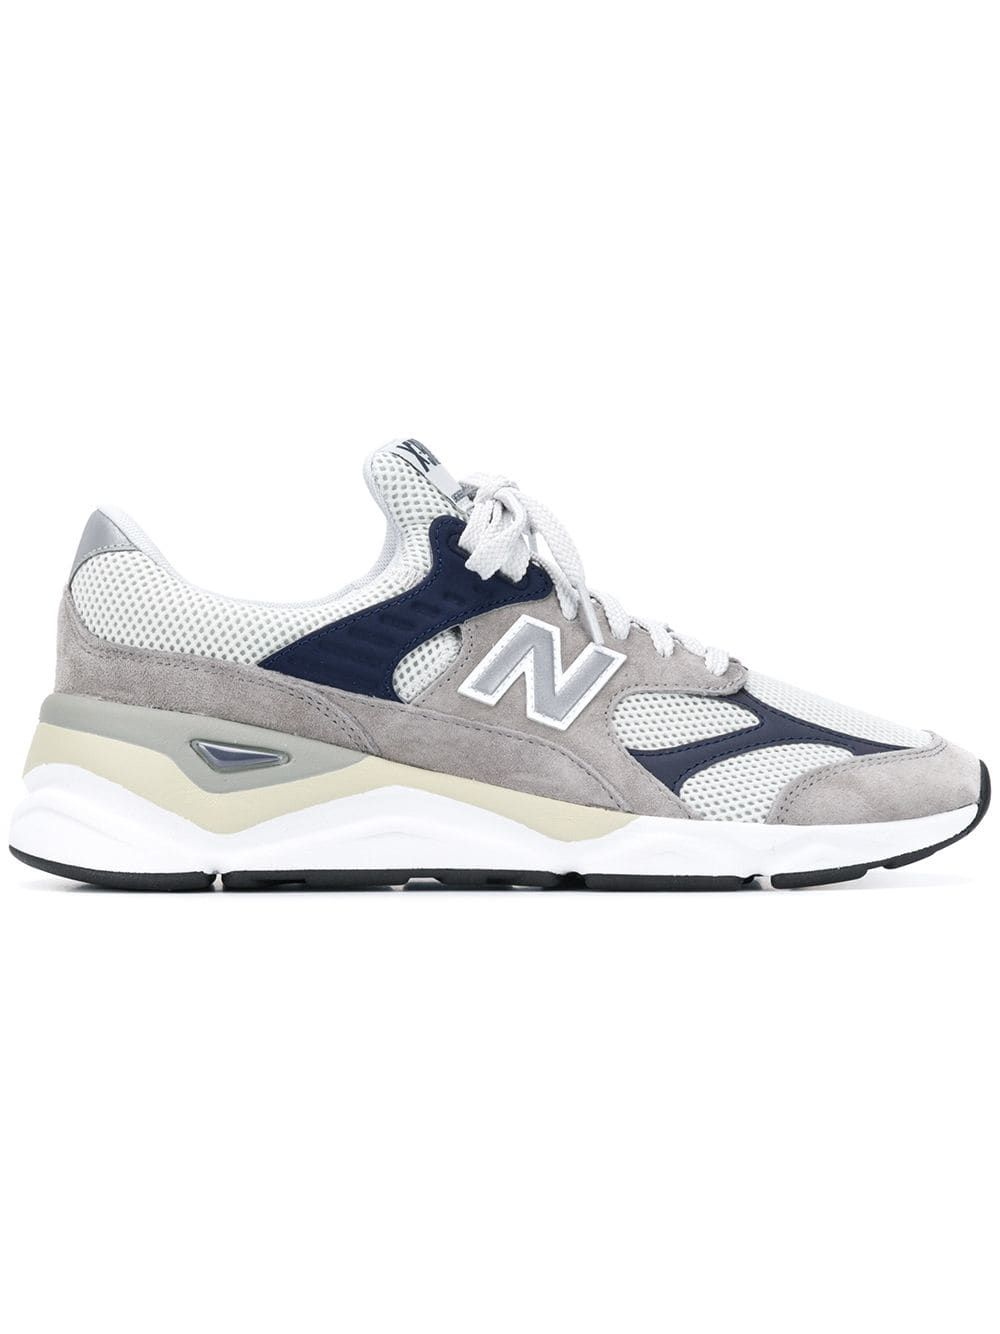 a40a2a7603 NEW BALANCE NEW BALANCE X-90 SNEAKERS - GREY. #newbalance #shoes ...